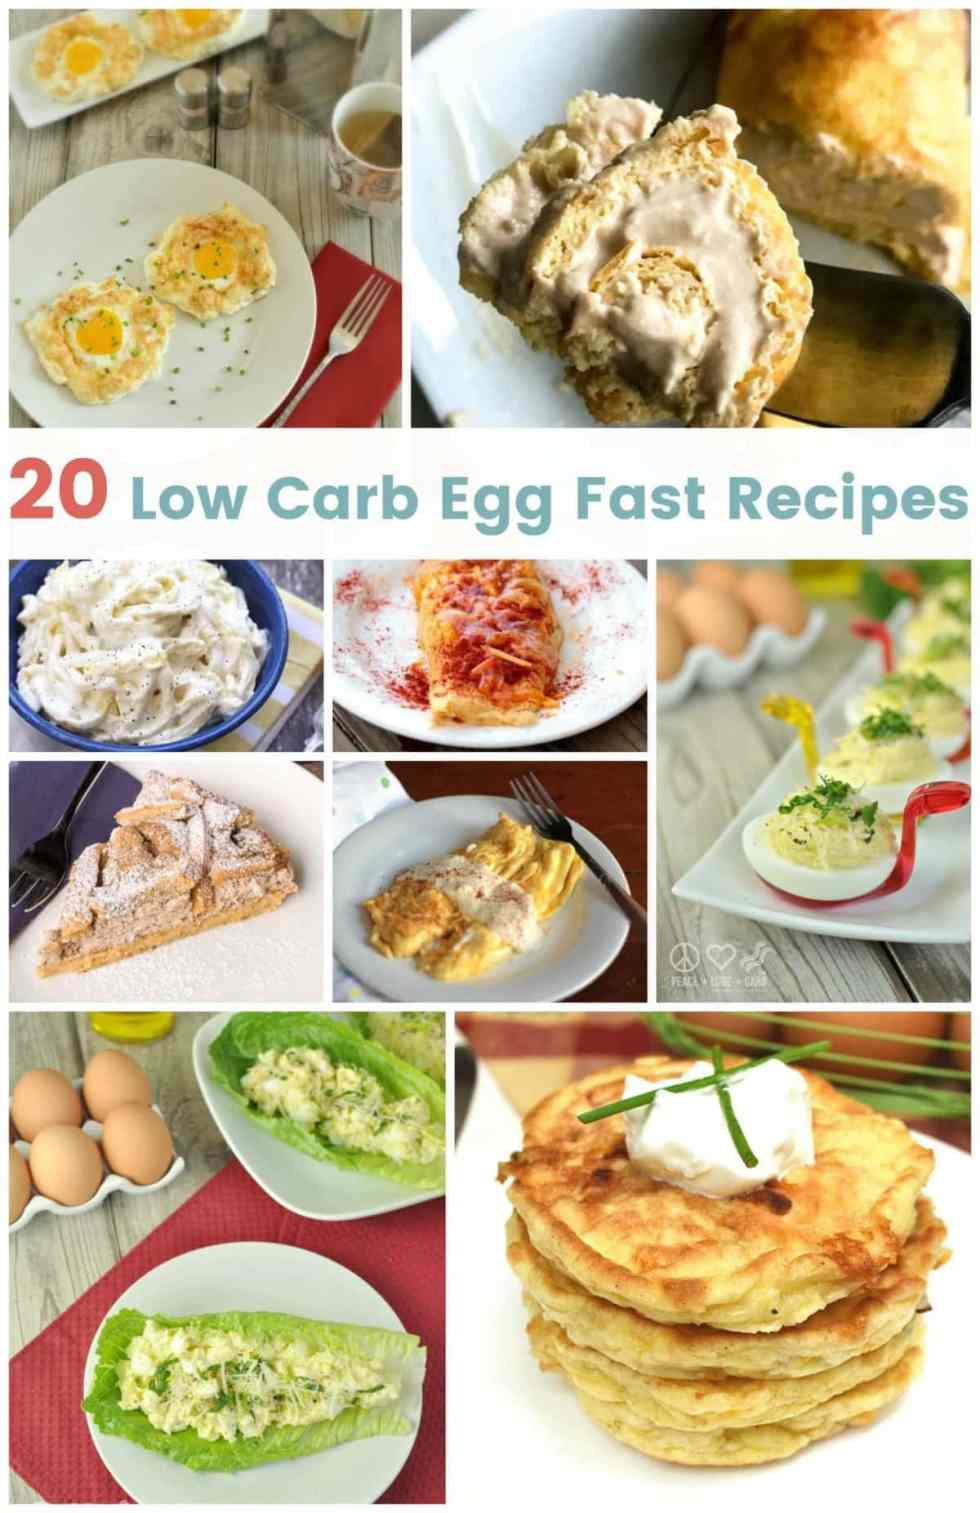 20 Low Carb Egg Fast Recipes | Peace Love and Low Carb